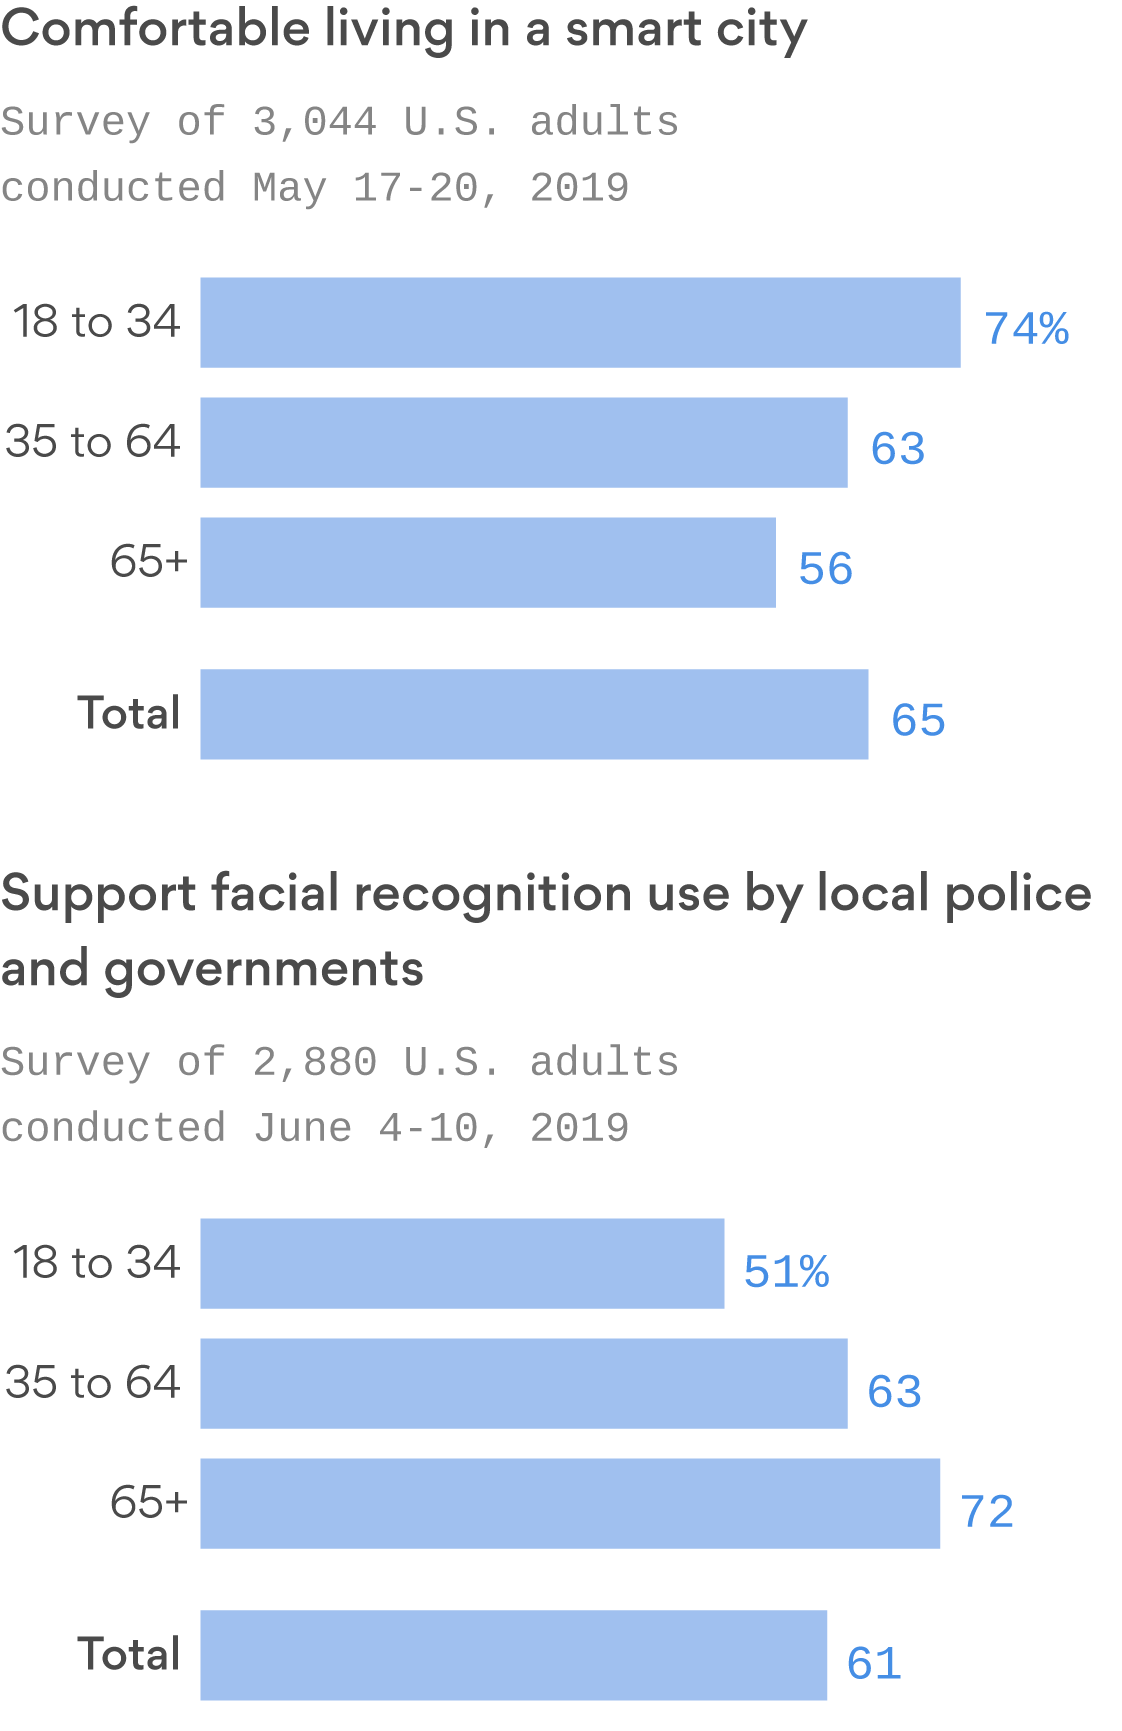 Older people are much more likely to support facial recognition use by police